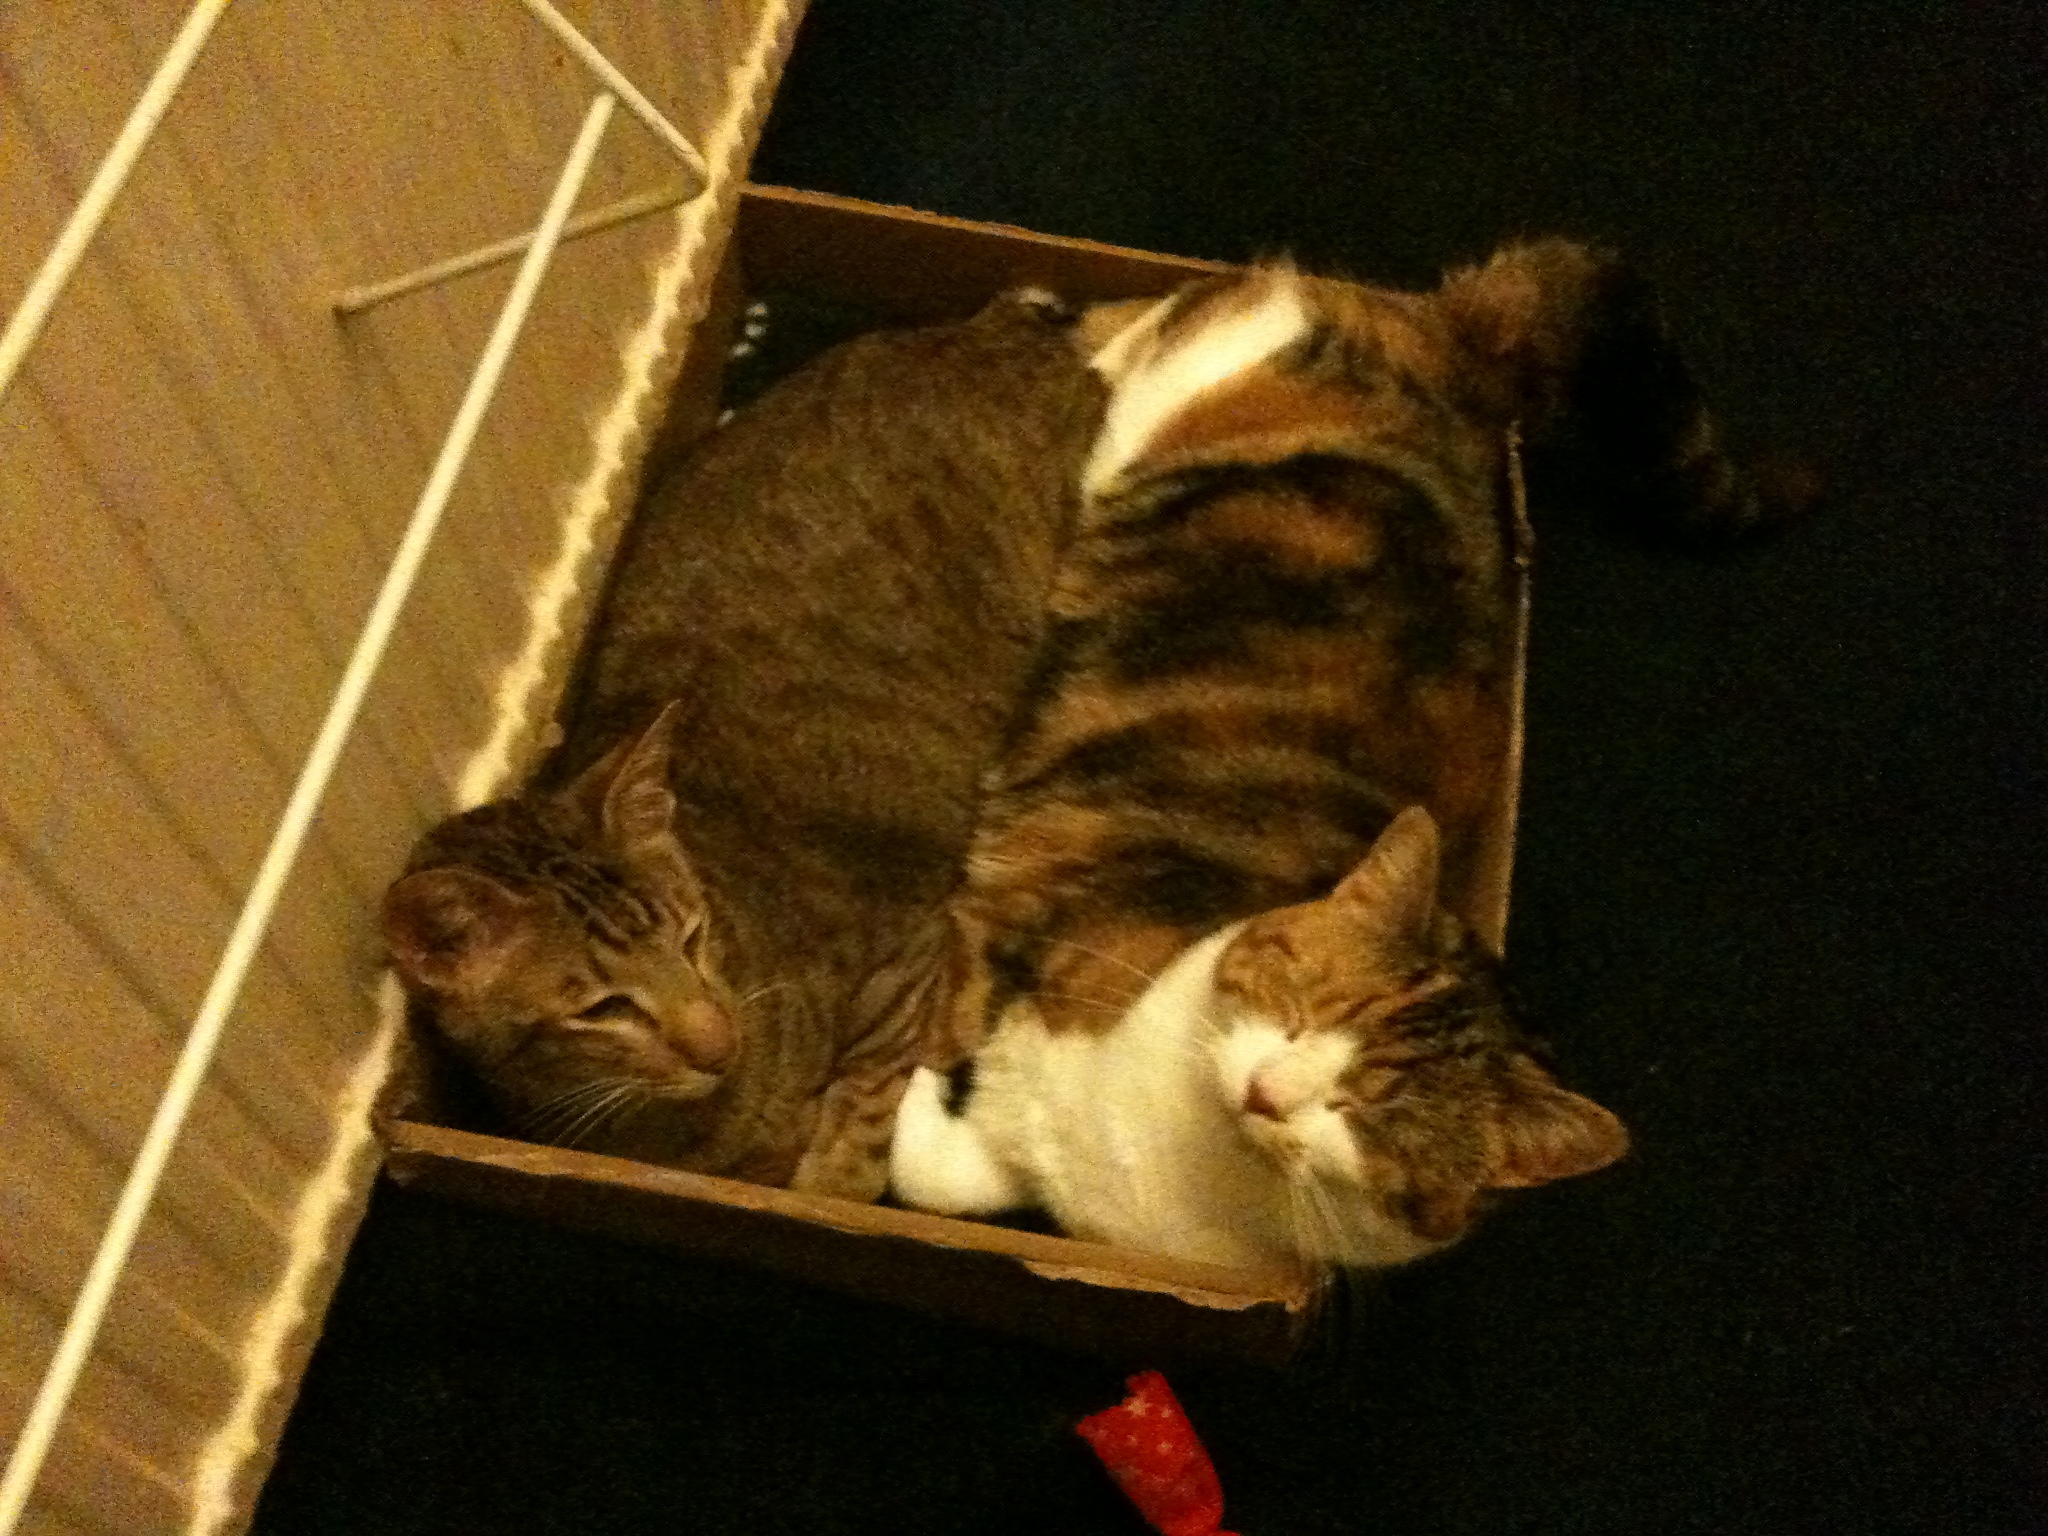 Wong! & Pip! in a box of warm!